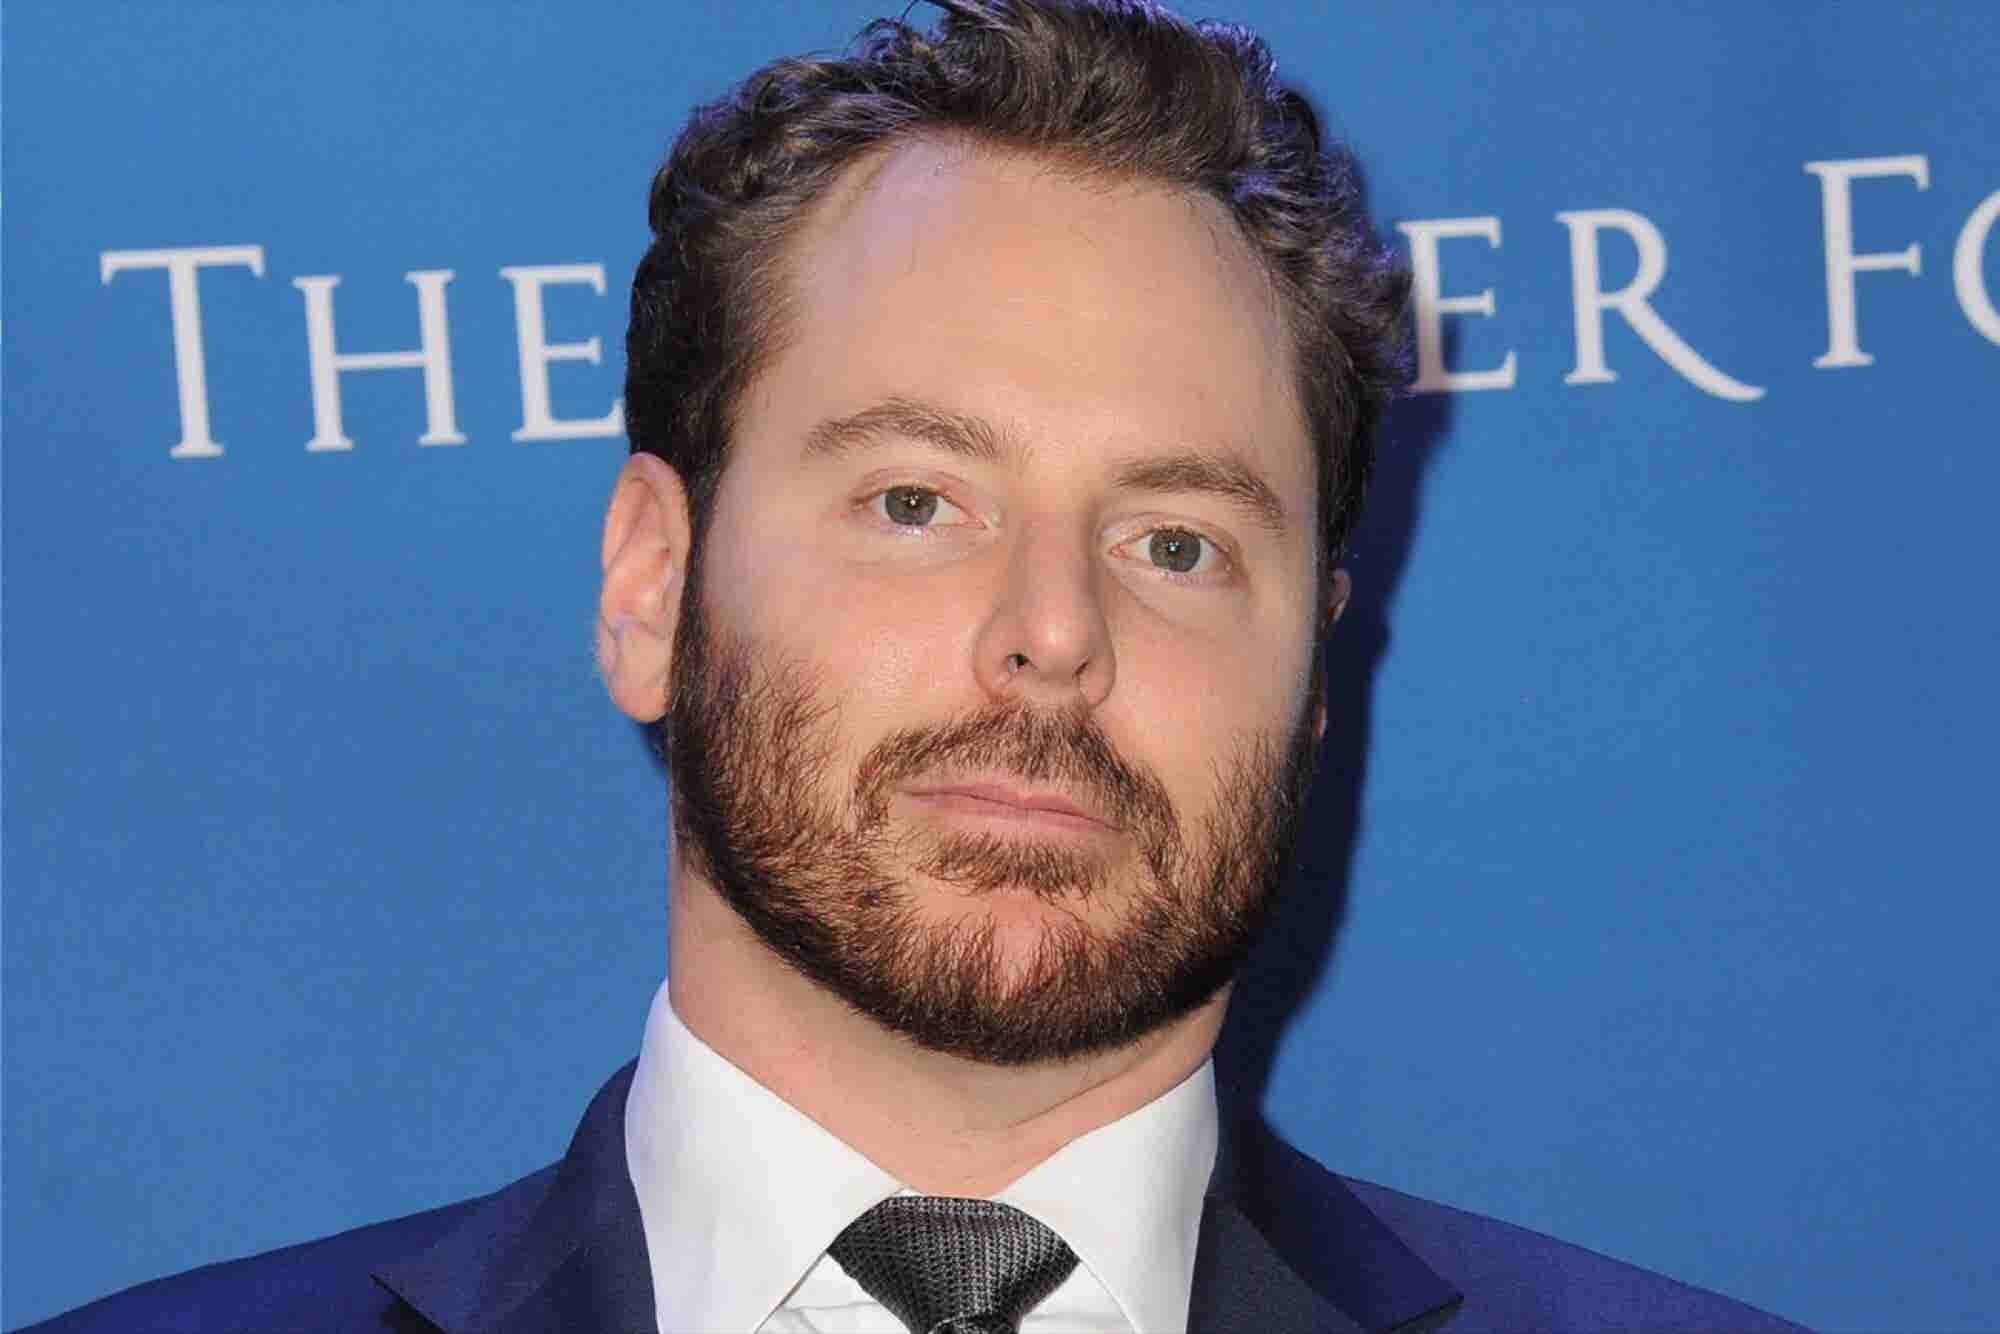 Sean Parker Donates $250 Million to Fight Cancer